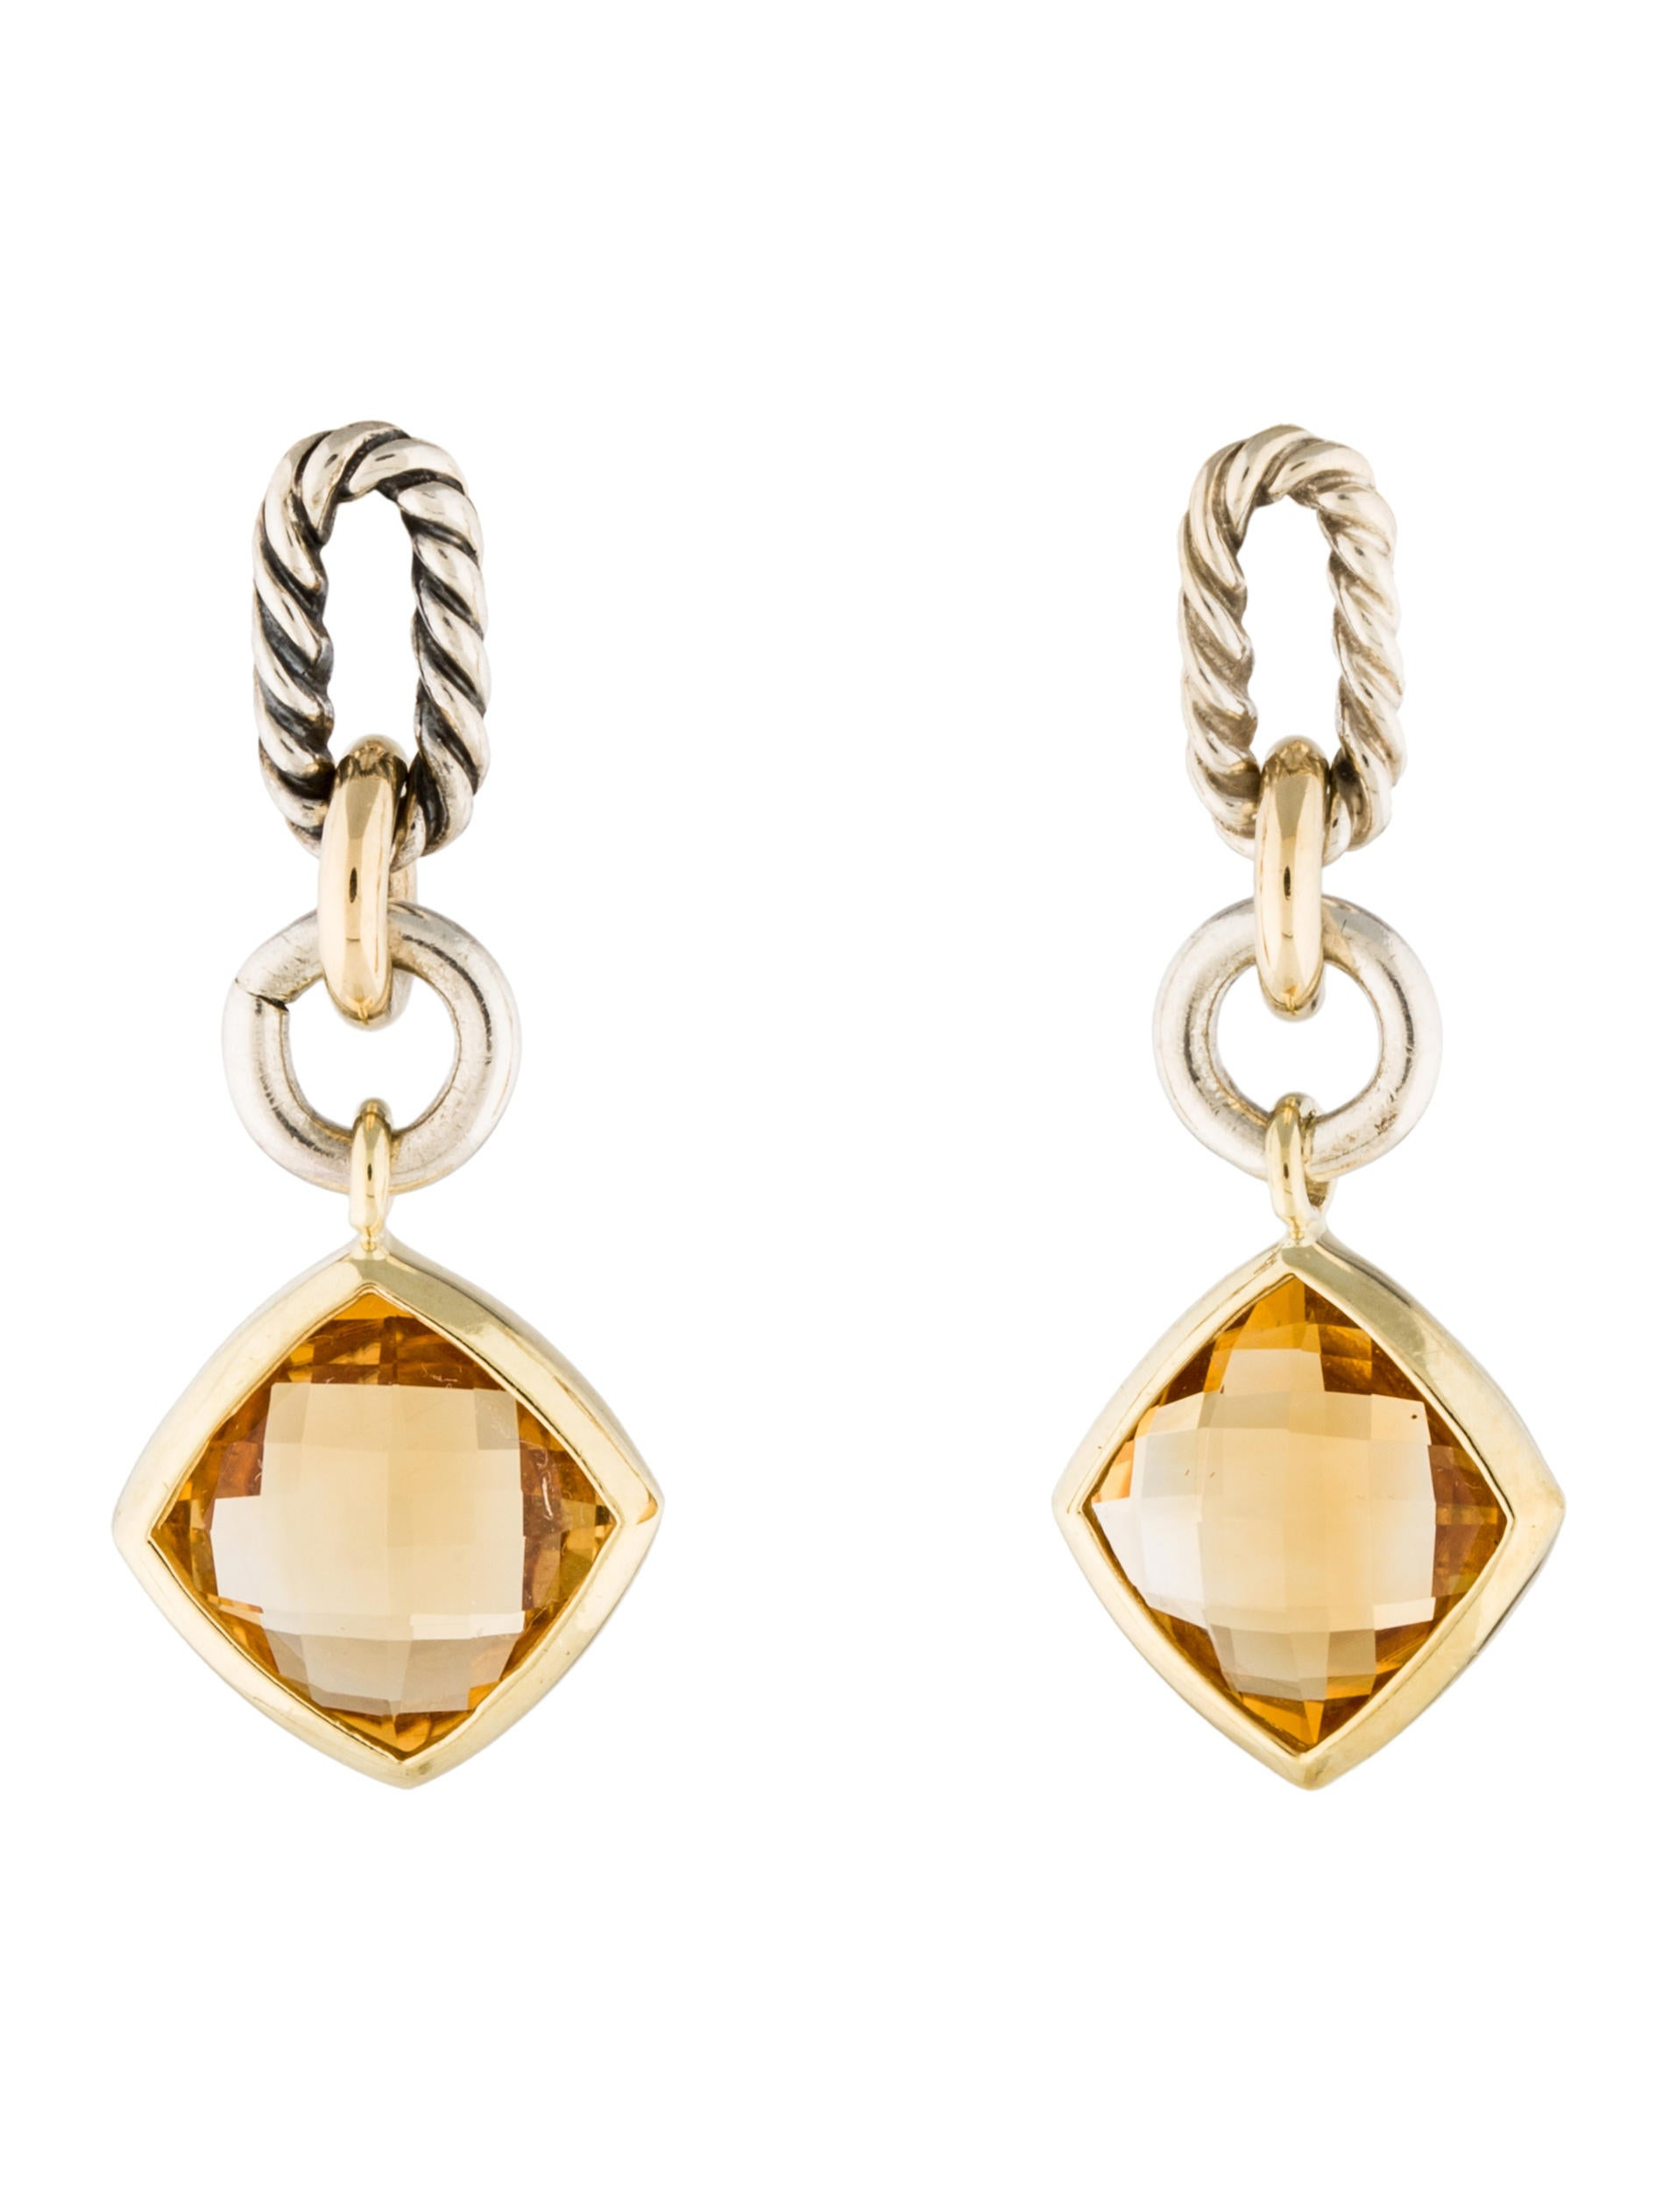 david yurman earrings sale david yurman two tone citrine drop earrings earrings 4316